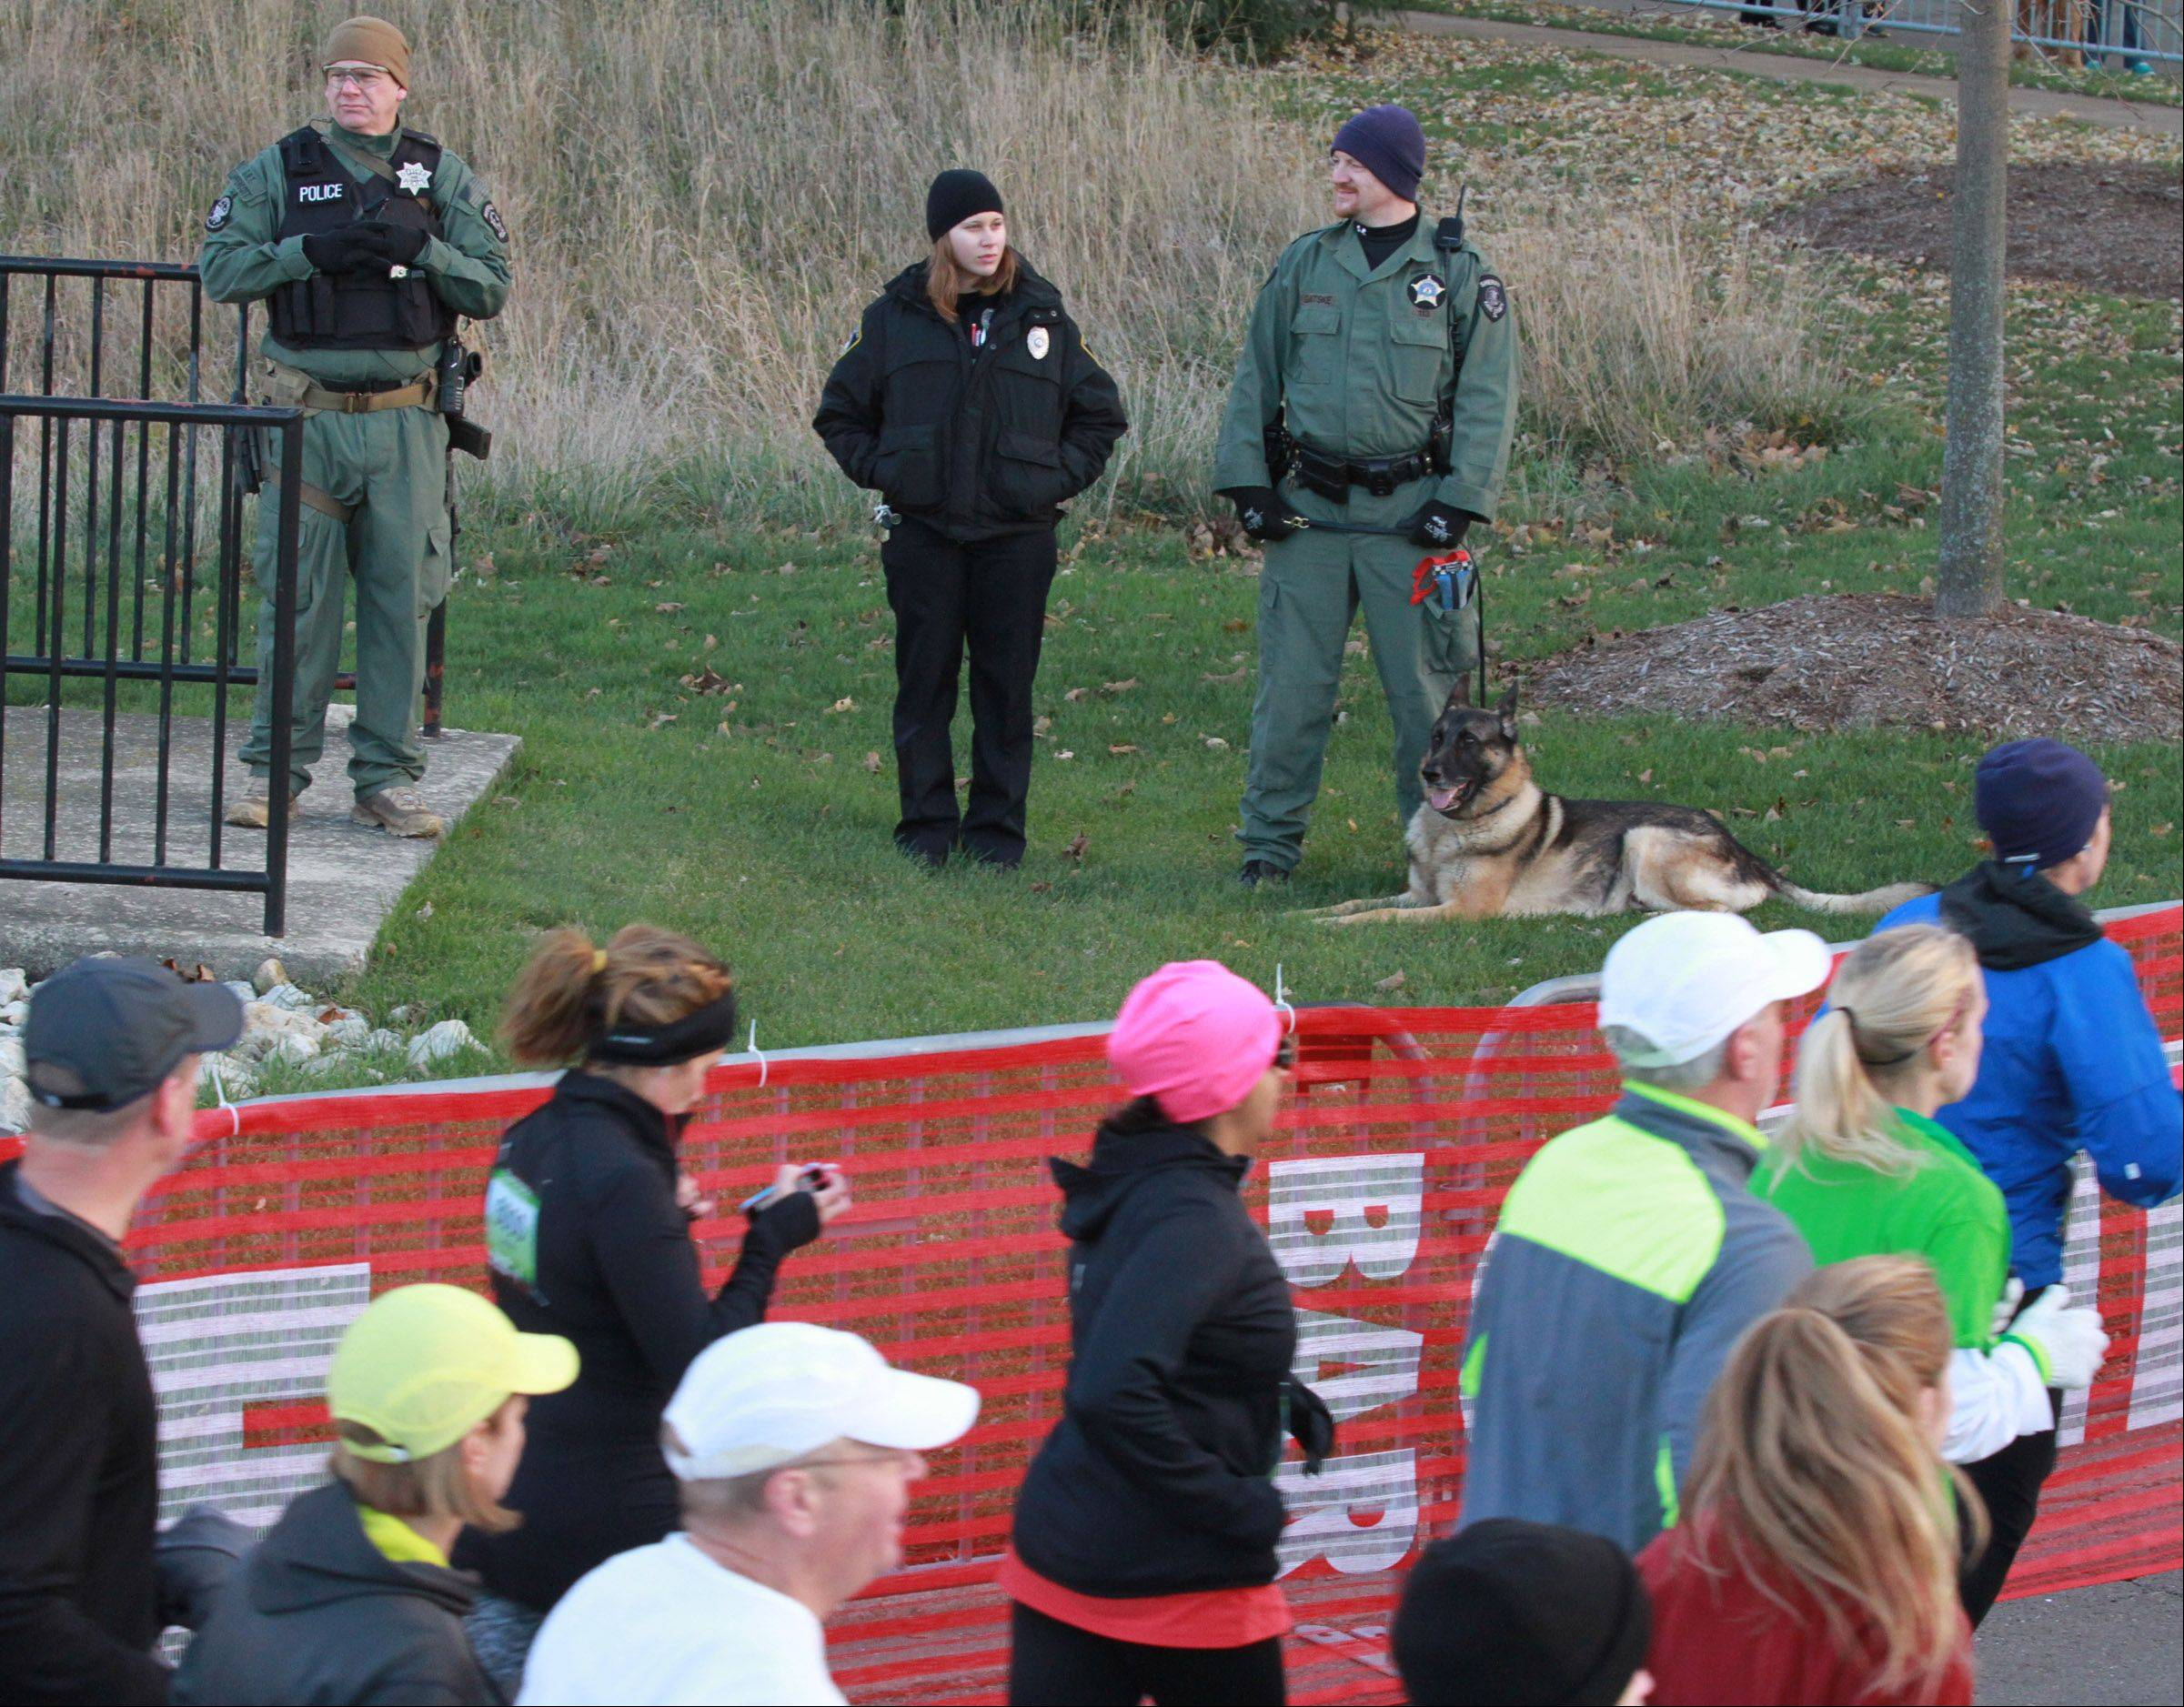 A police K-9 officer watches runners near the start of the inaugural Edward Hospital Naperville Marathon on Sunday, November 10, 2013.